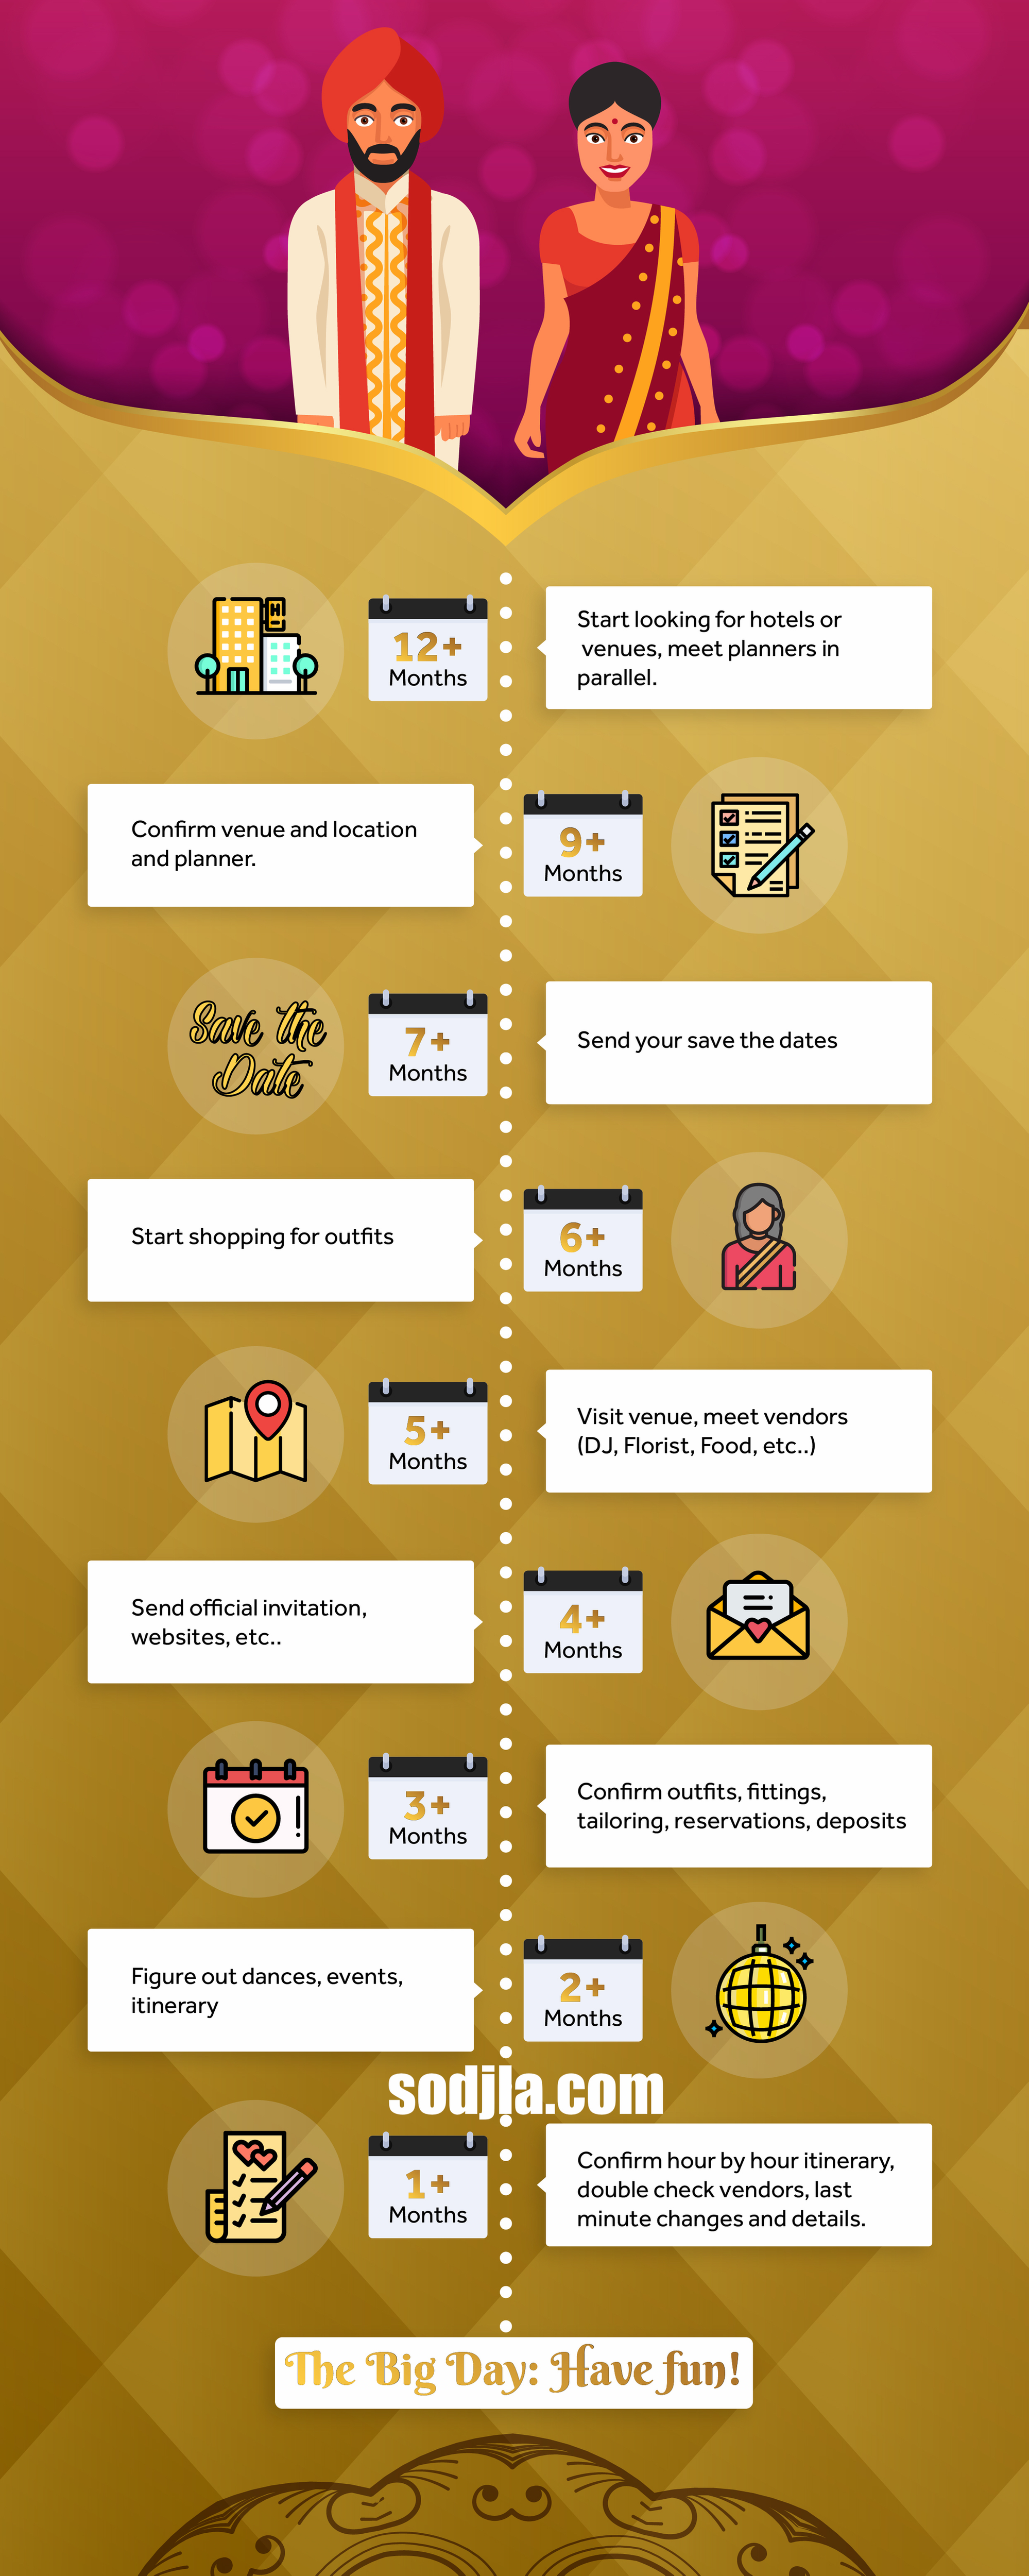 How Long Does It Take To Plan An Indian Wedding Infographic In 2020 Wedding Infographic Indian Wedding Planning Checklist Wedding Planner Checklist